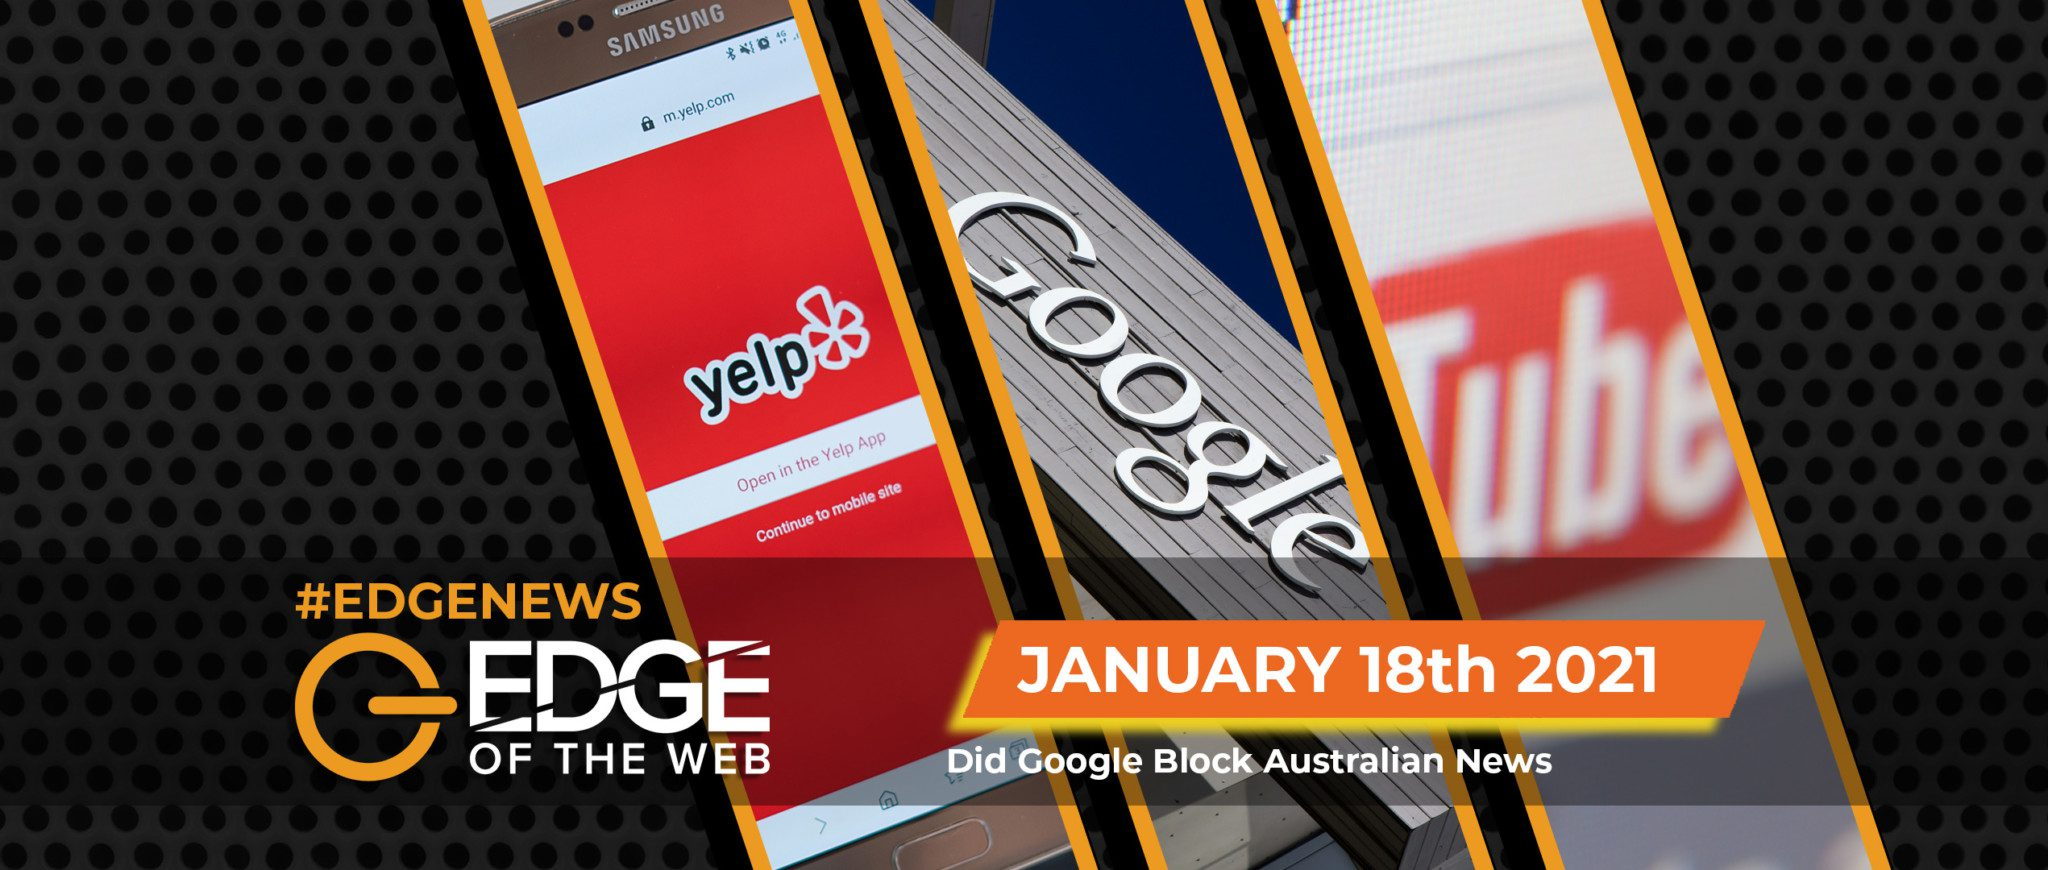 EDGE News Featured Image January 18th